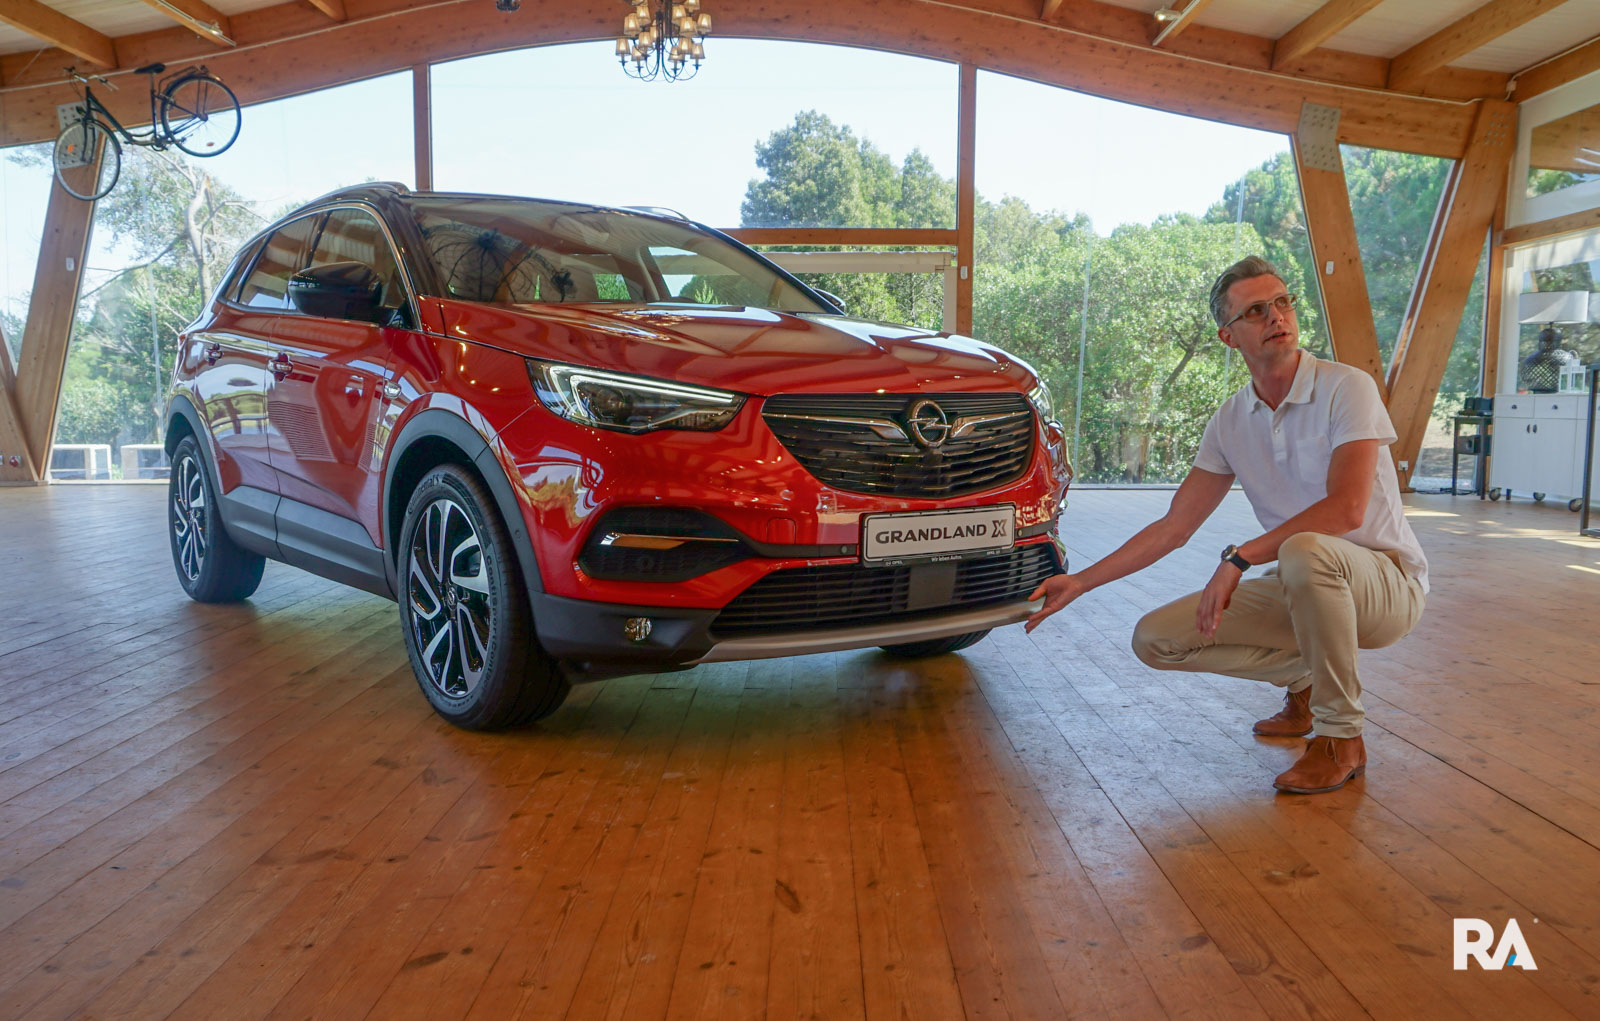 Fredrik Backman a descrever design do Opel Grandland X